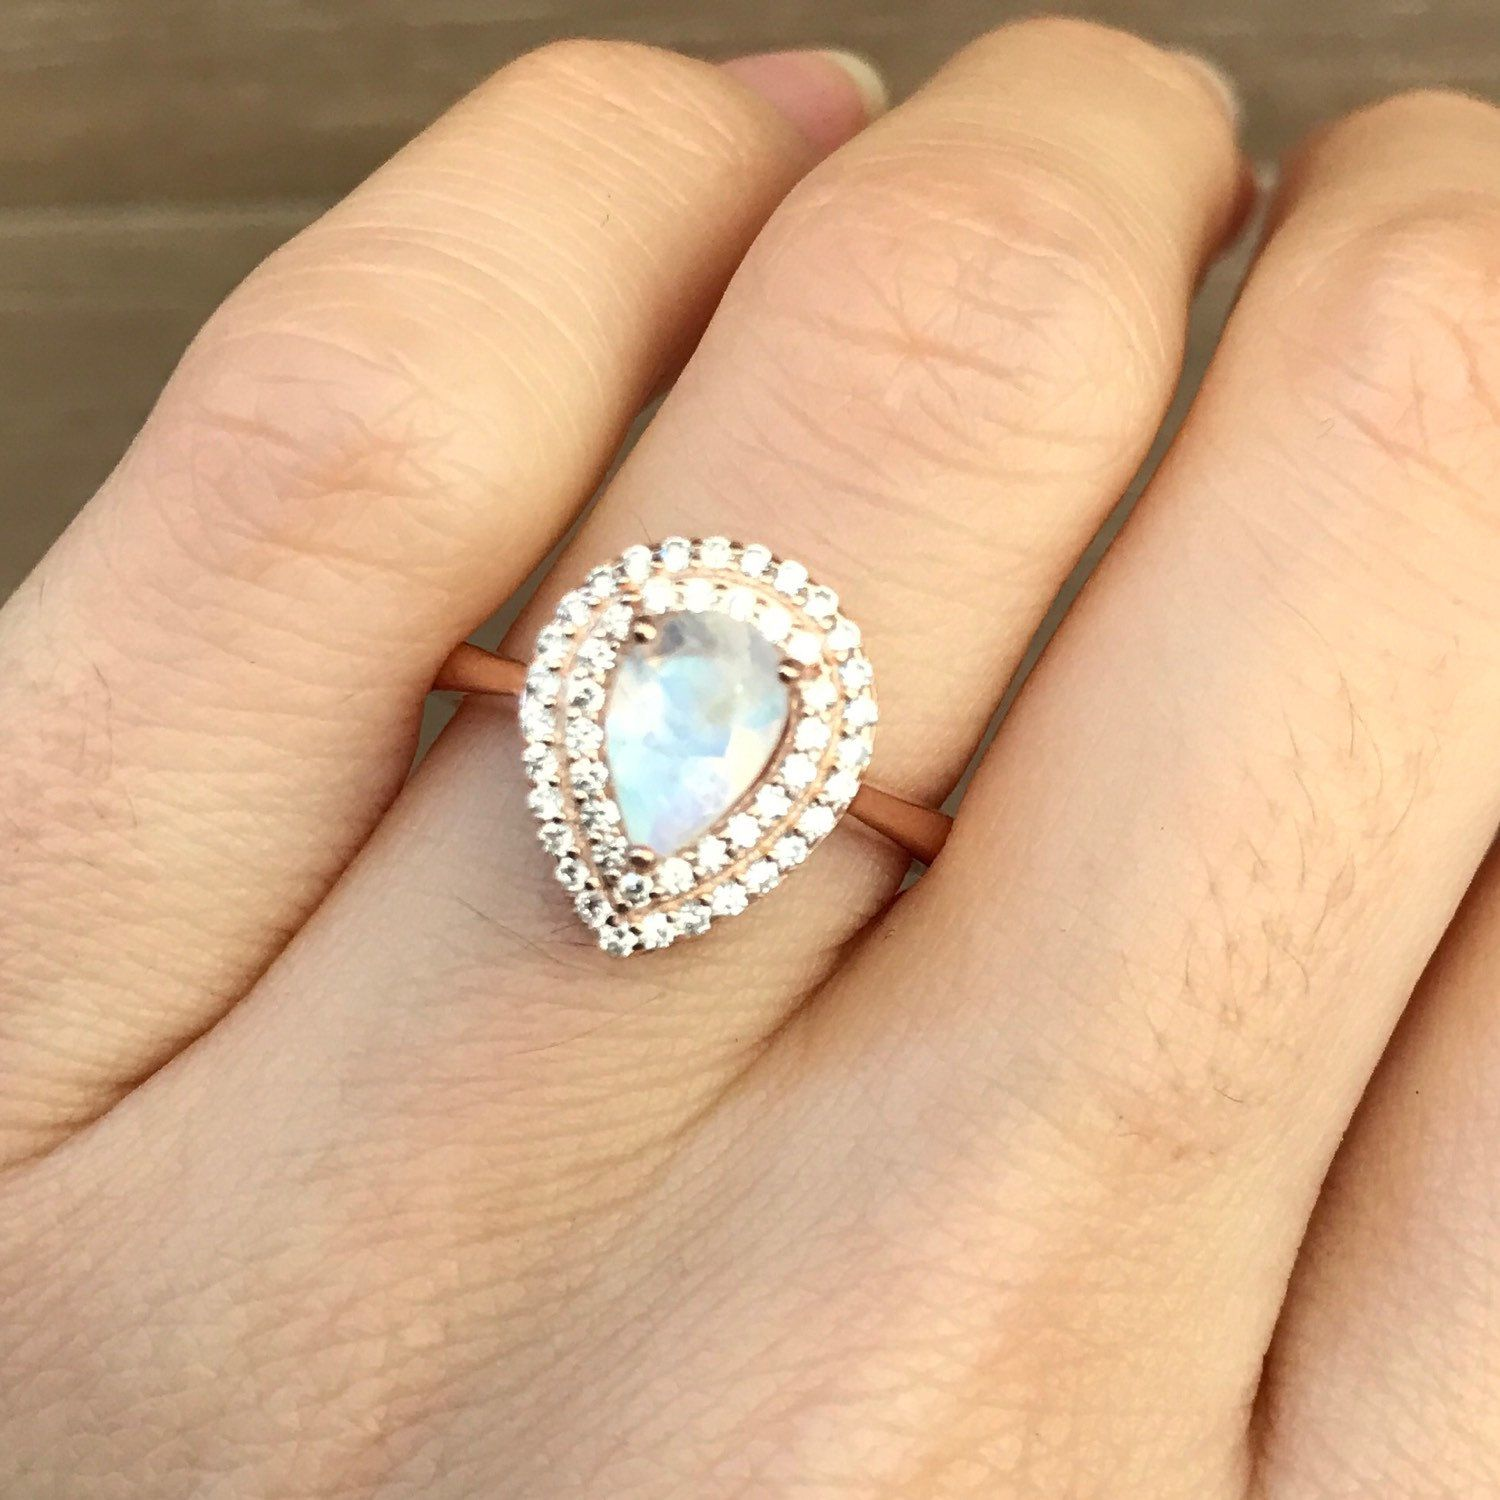 Moonstone engagement ring rose gold promise ring halo pear